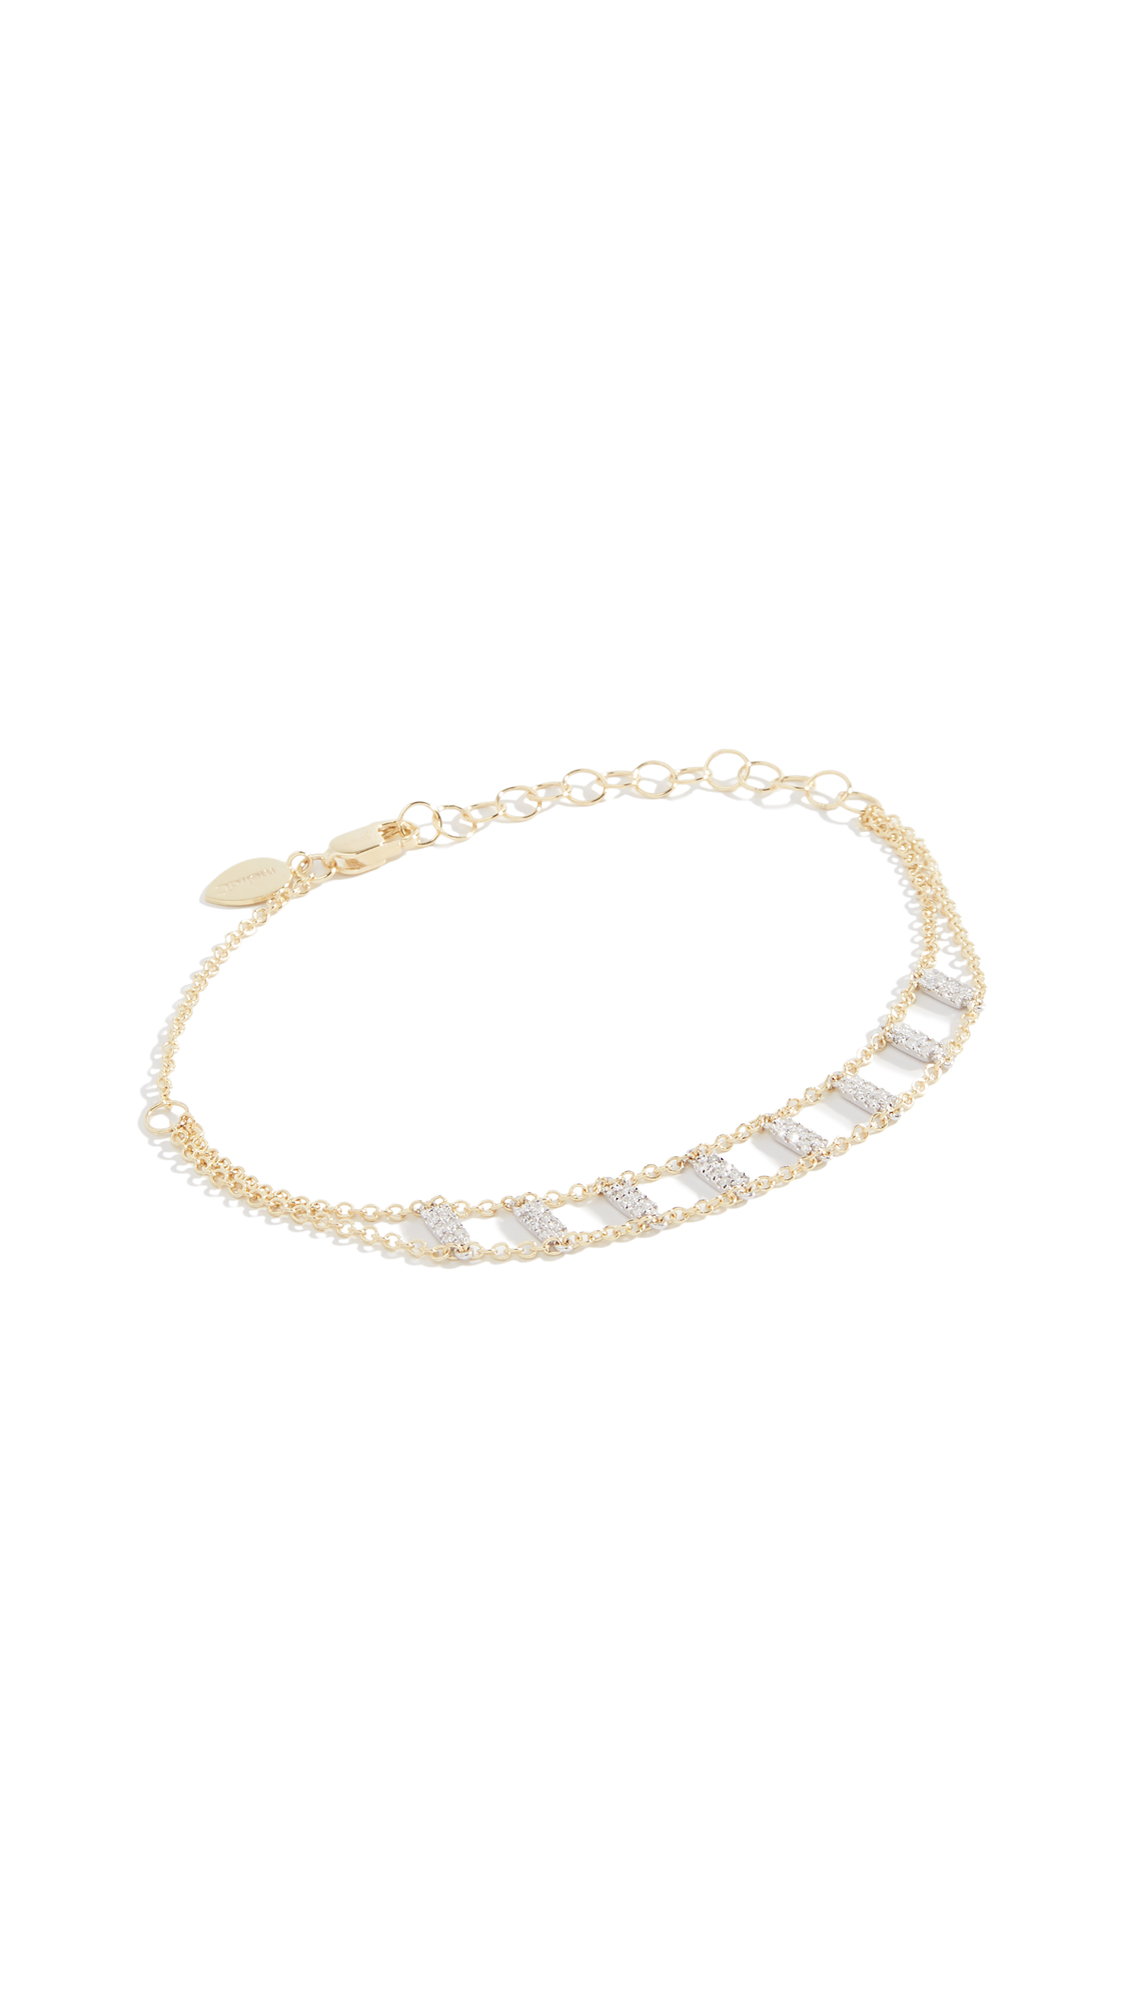 Meira T Brynn Bracelet In Yellow Gold